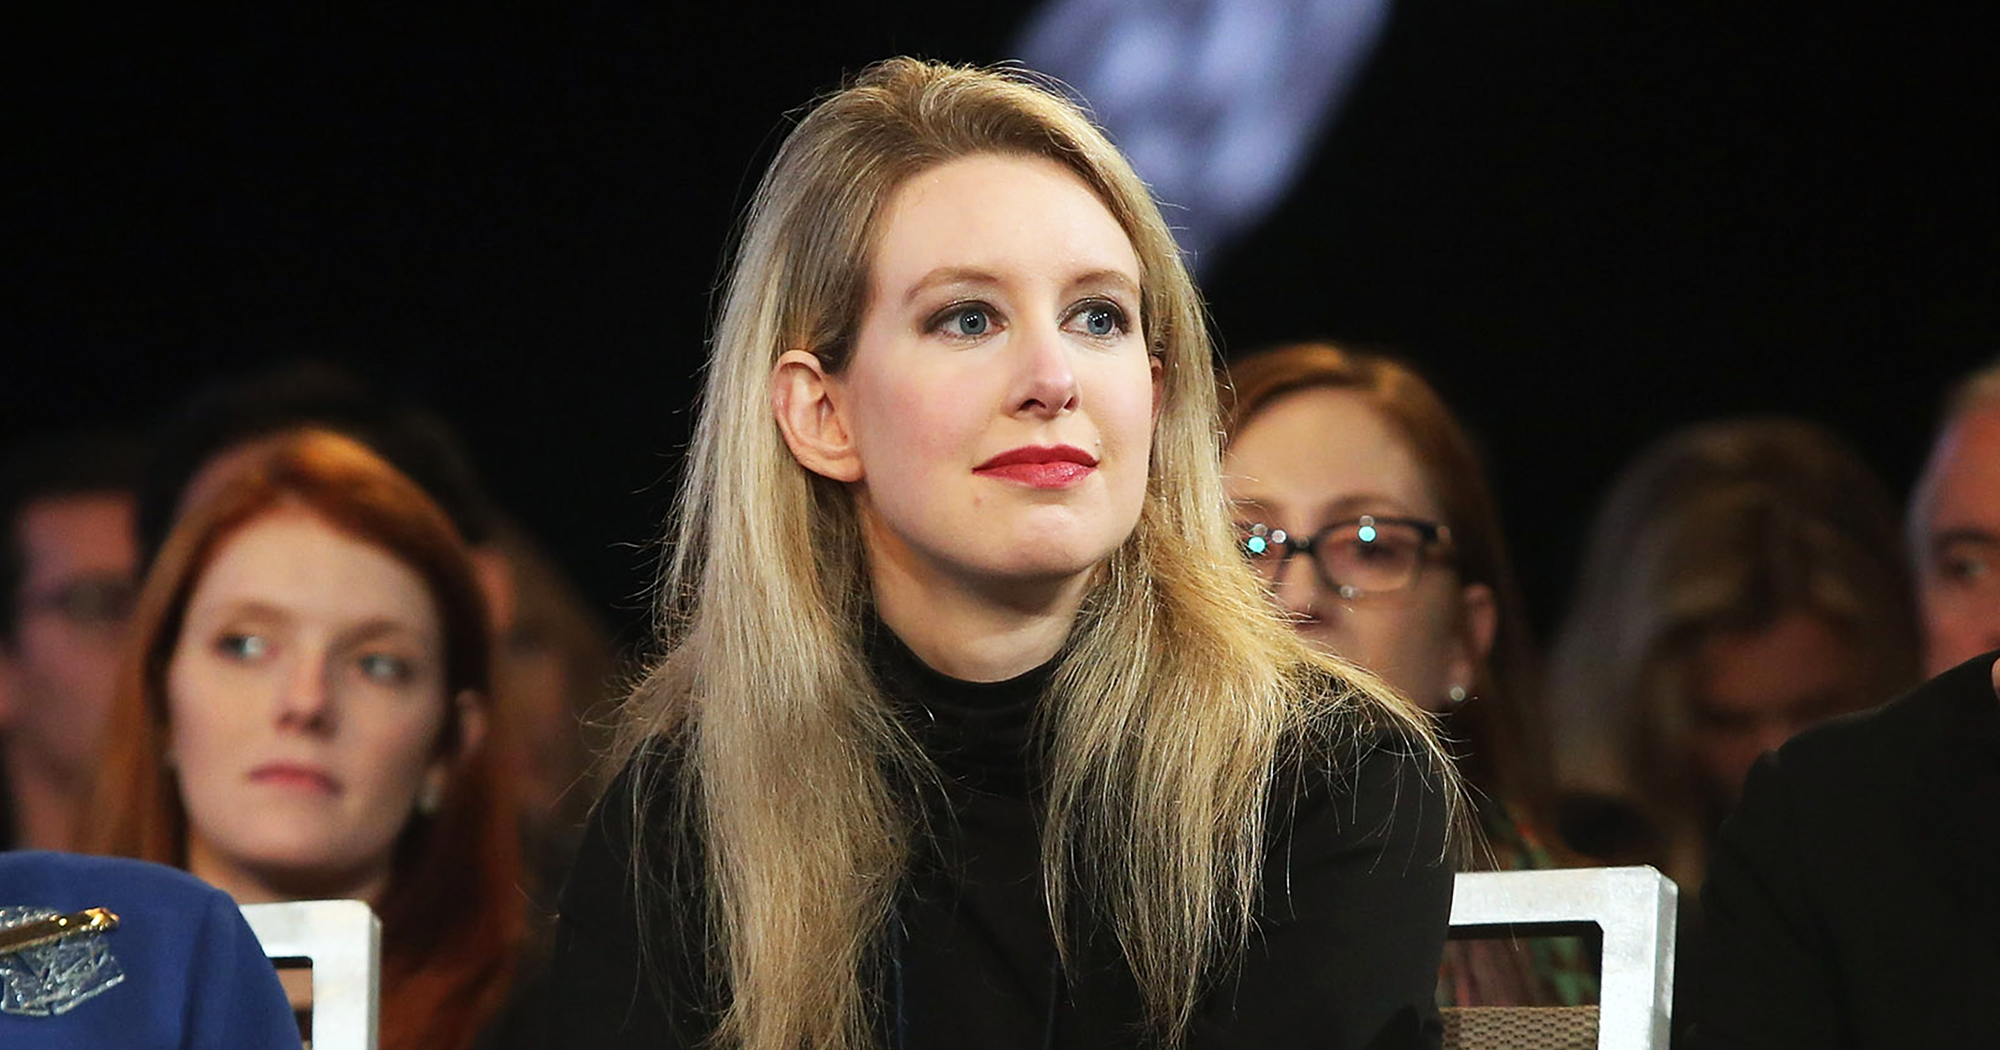 This Is What Elizabeth Holmes Looked Like Before She Was Elizabeth Holmes